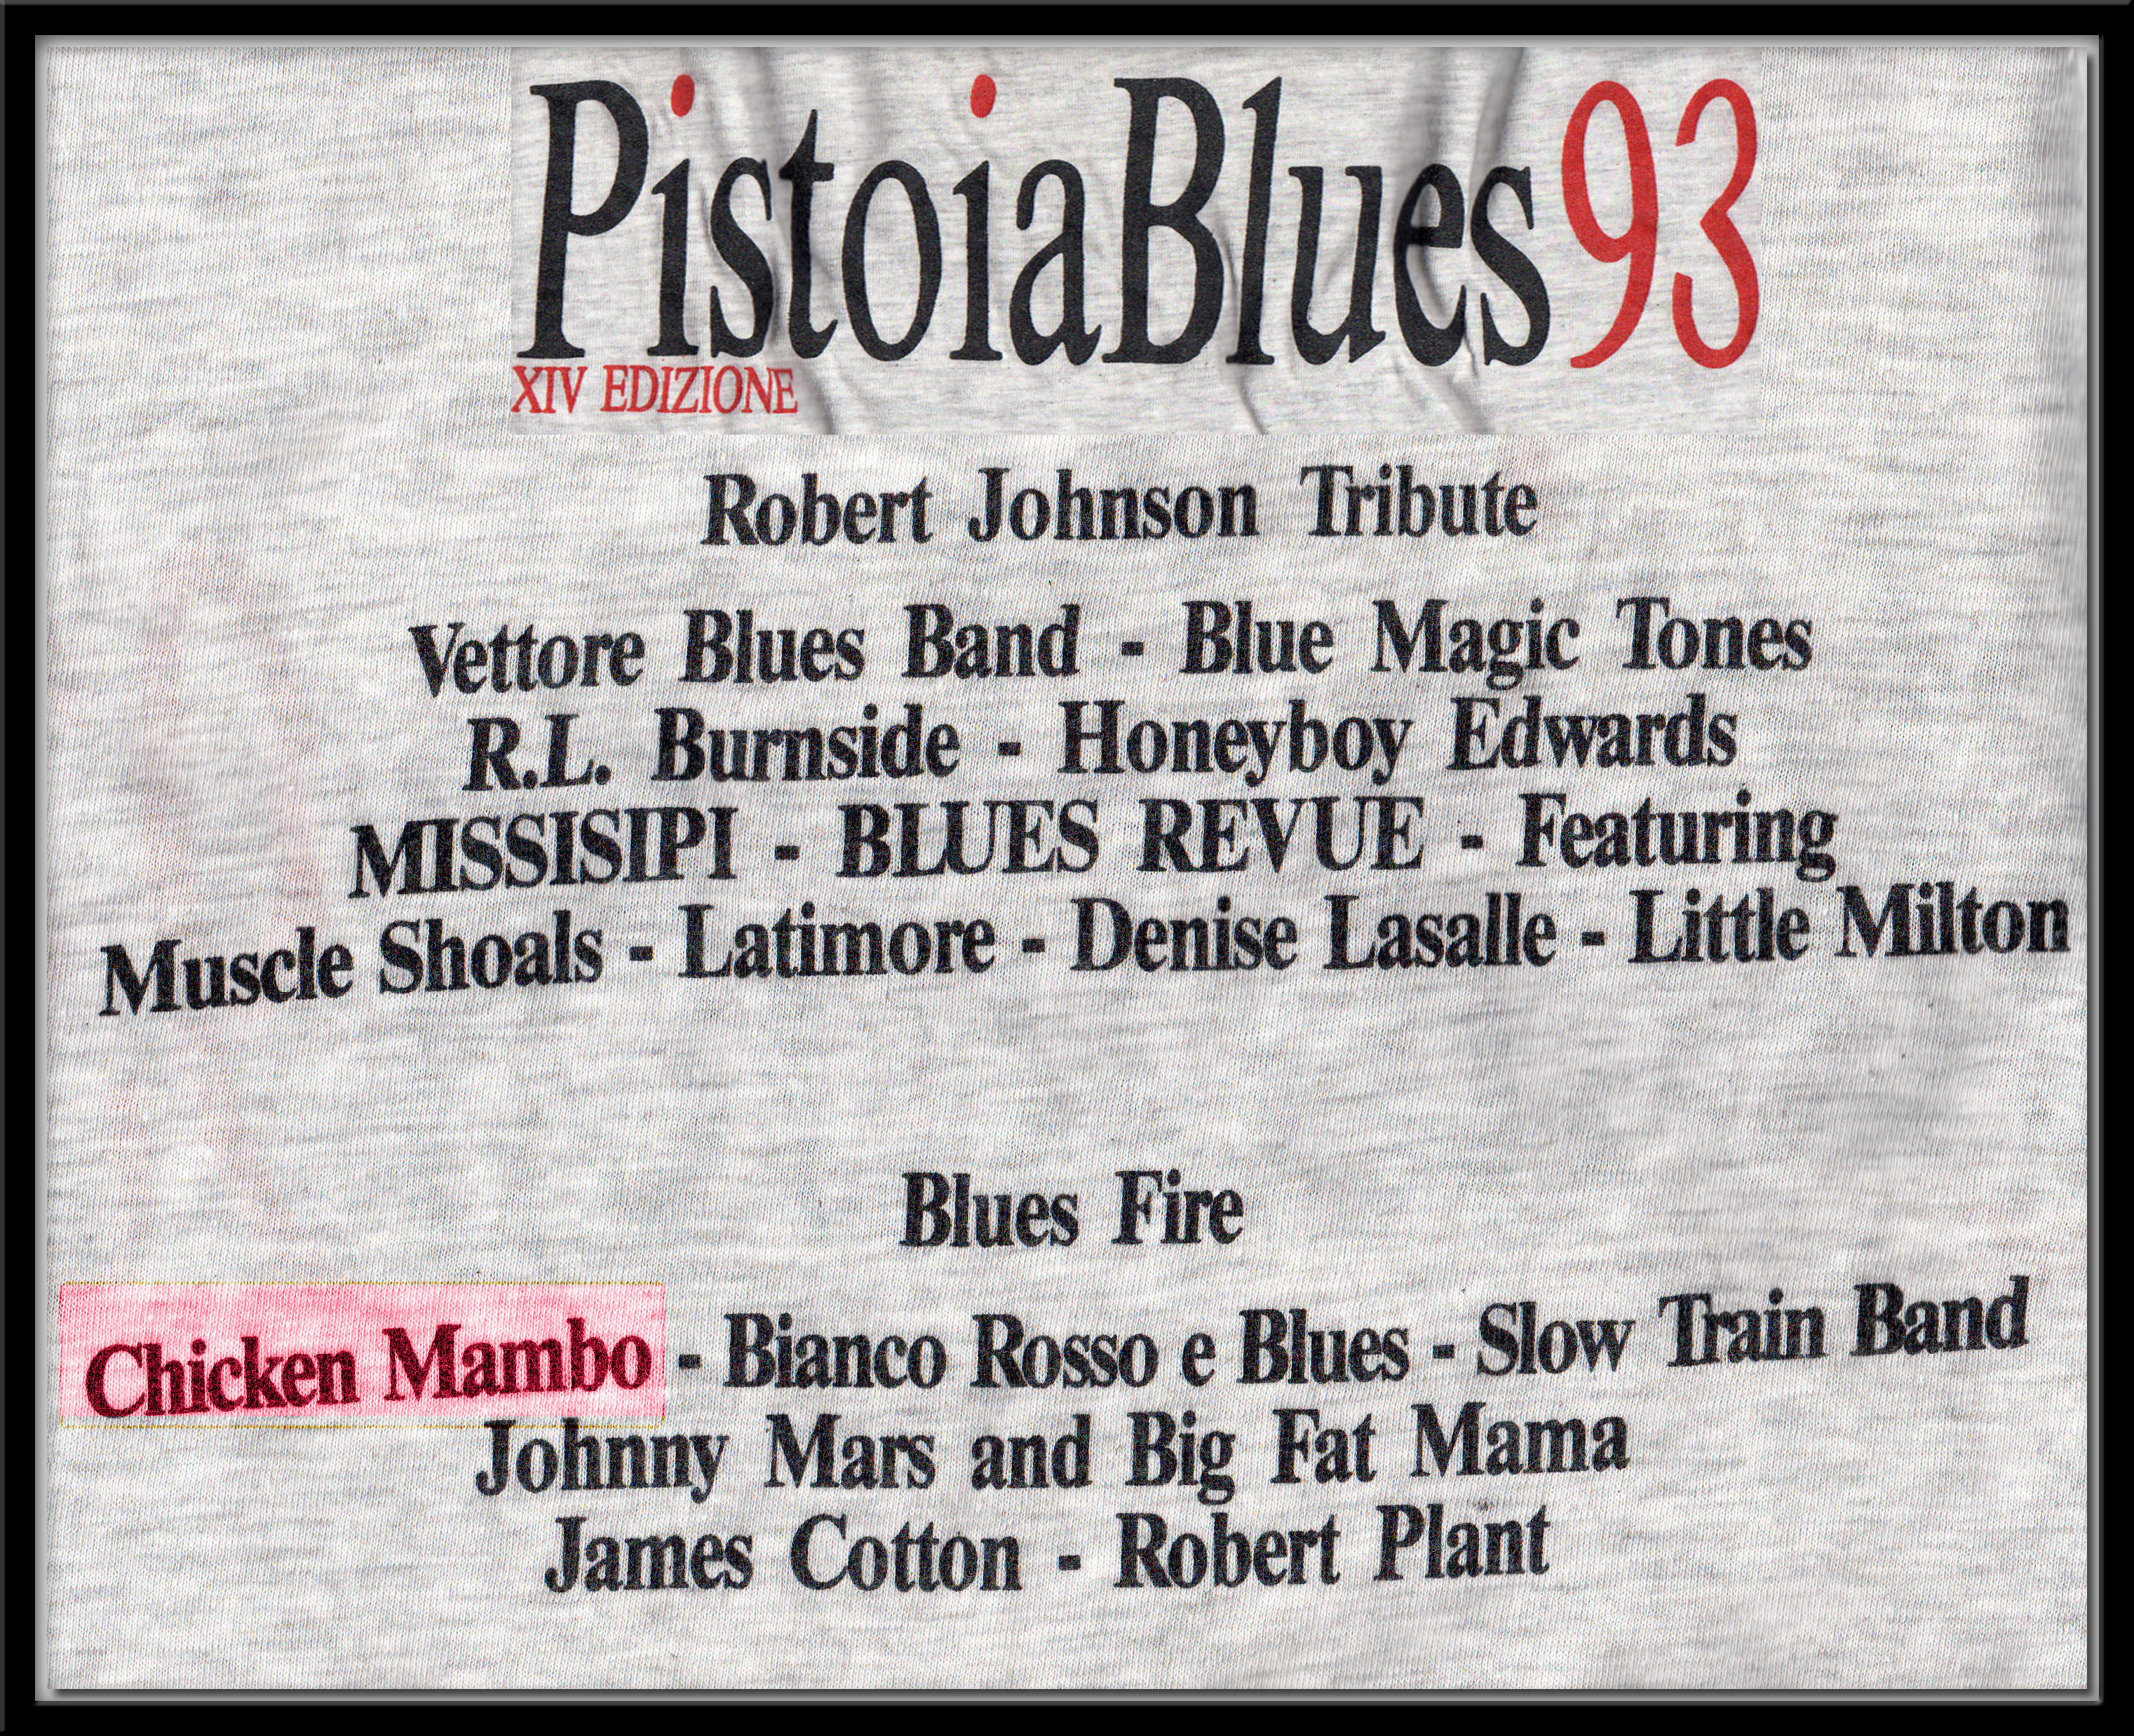 Pistoia Blues 93 T shirt